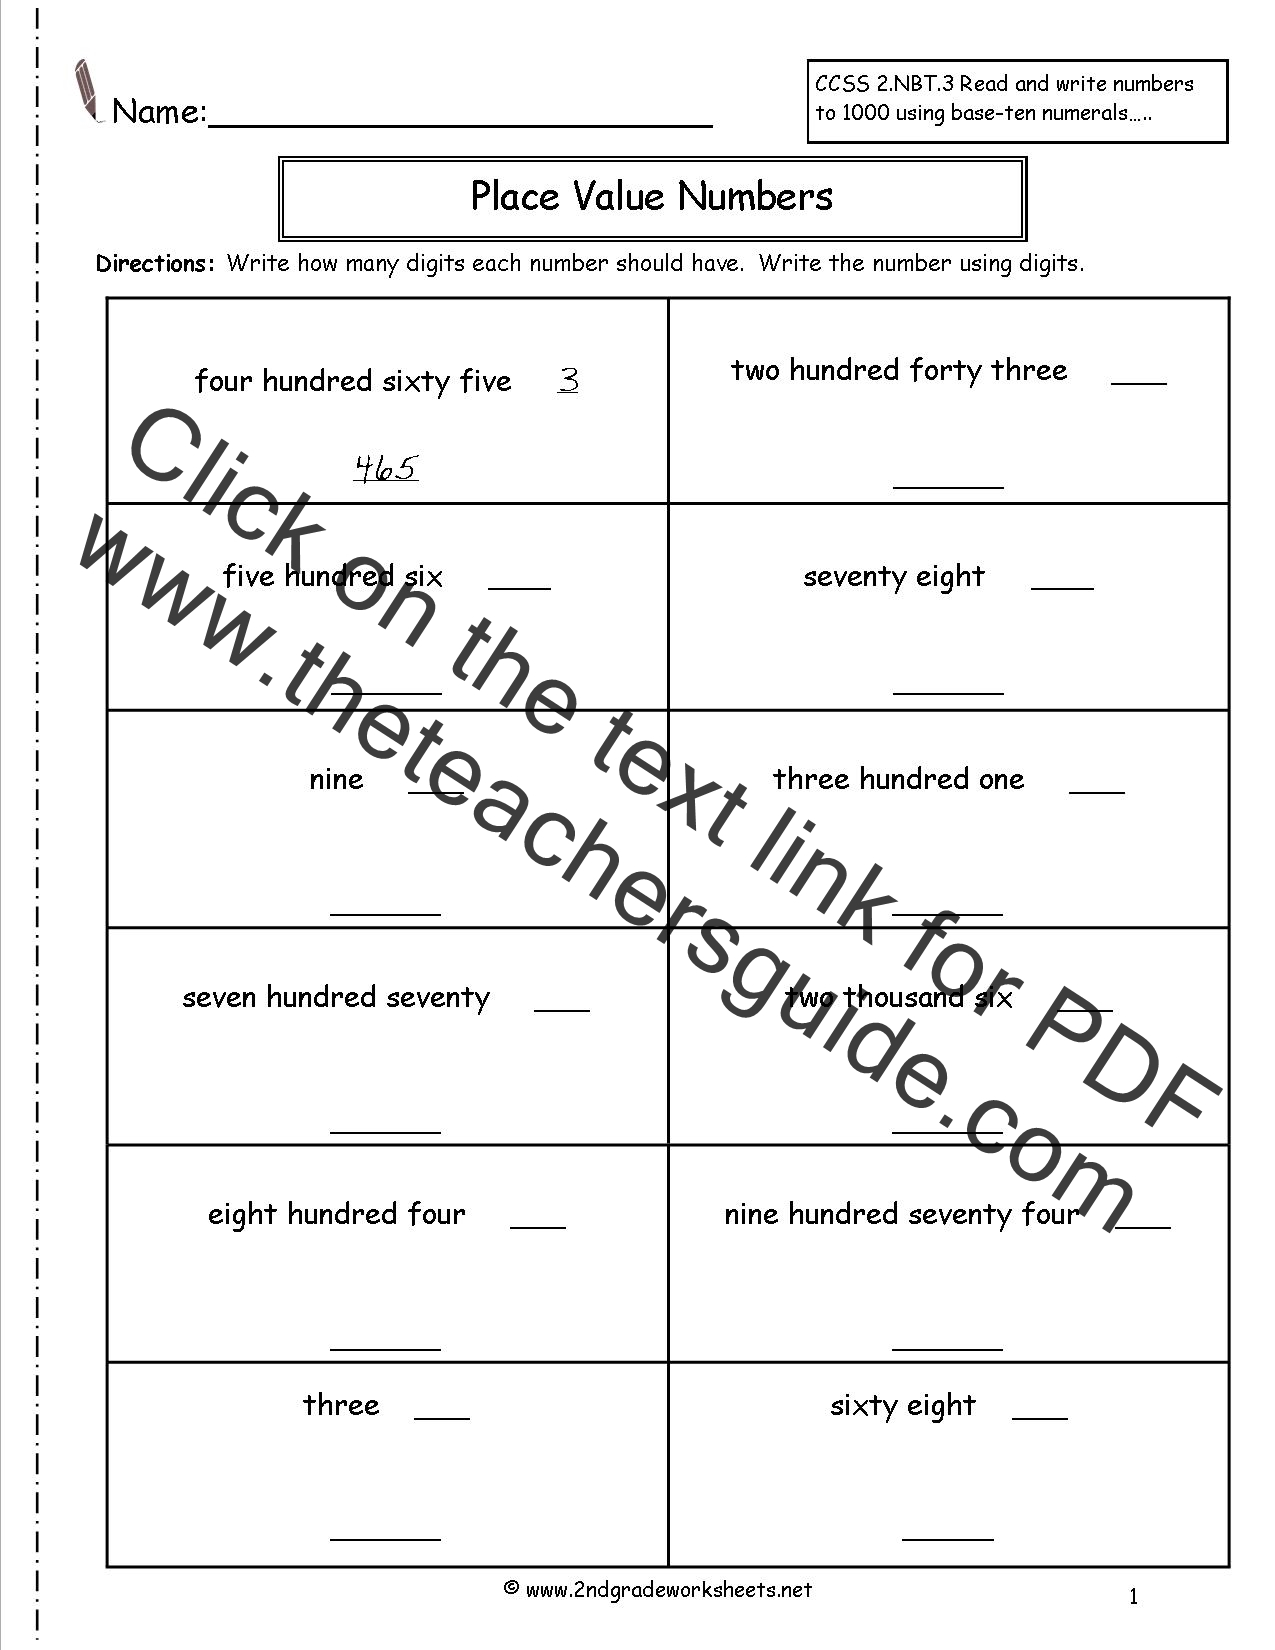 3 Digit Base Ten Blocks Worksheet